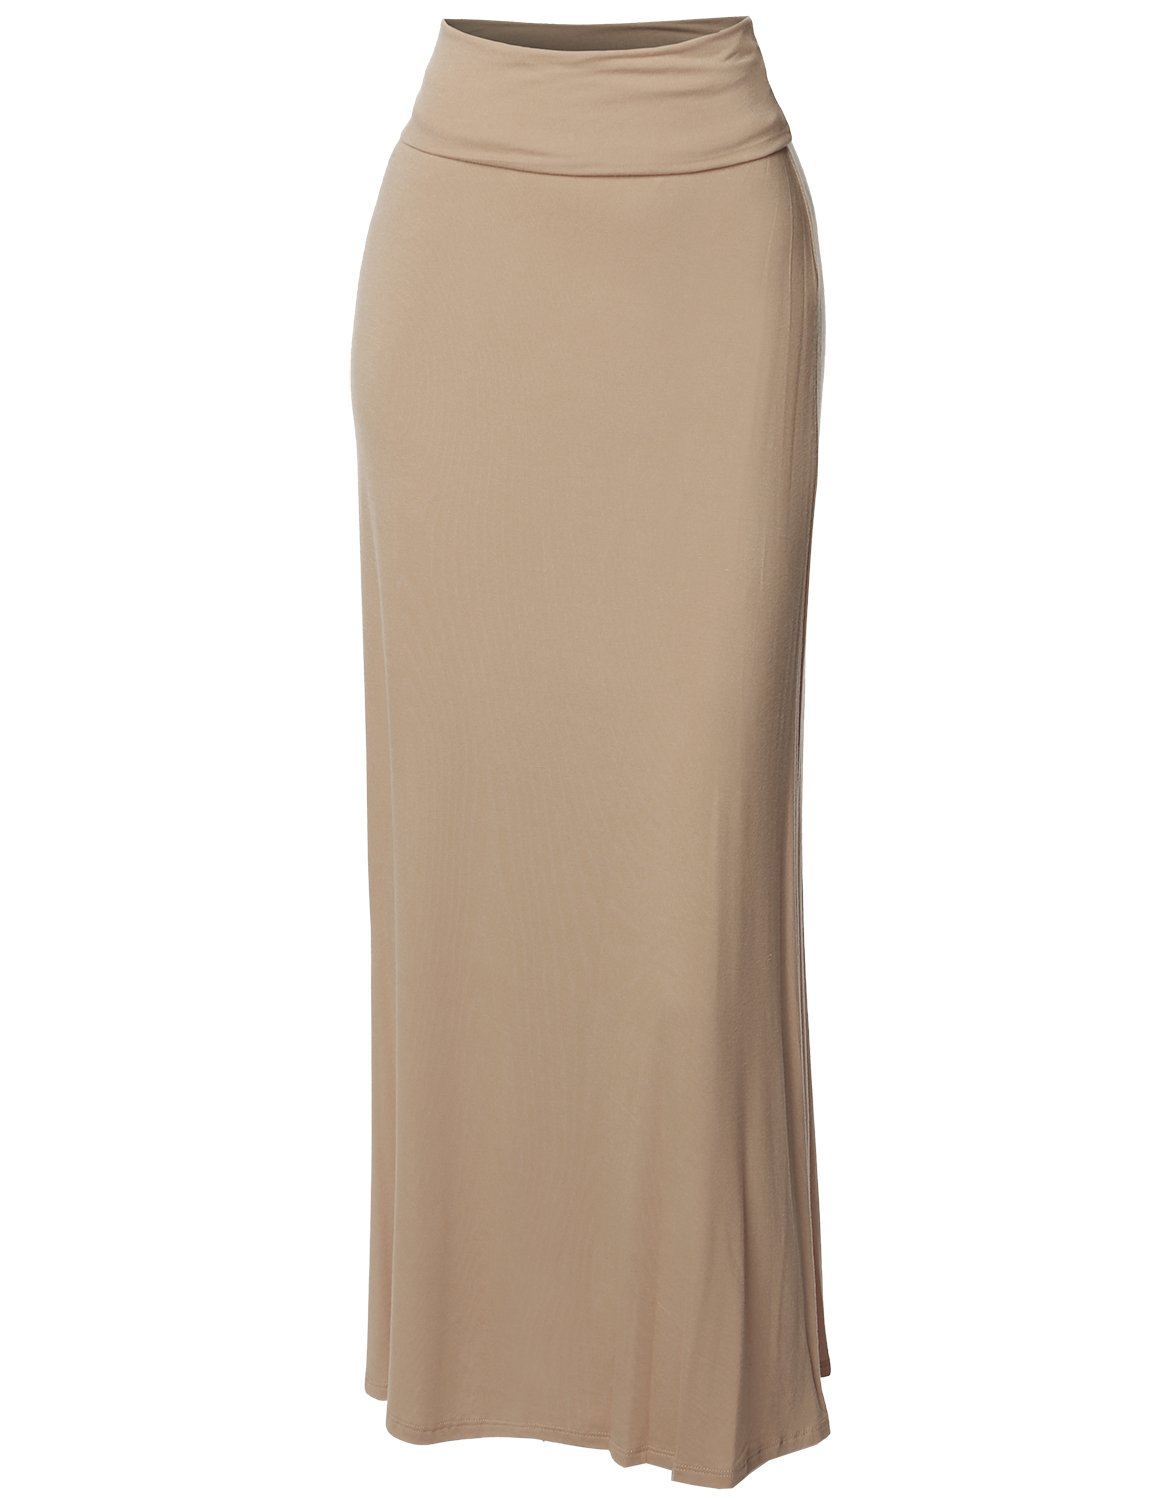 Stylish Fold Over Flare Long Maxi Skirt - Made in USA Beige M by Made by Emma (Image #3)